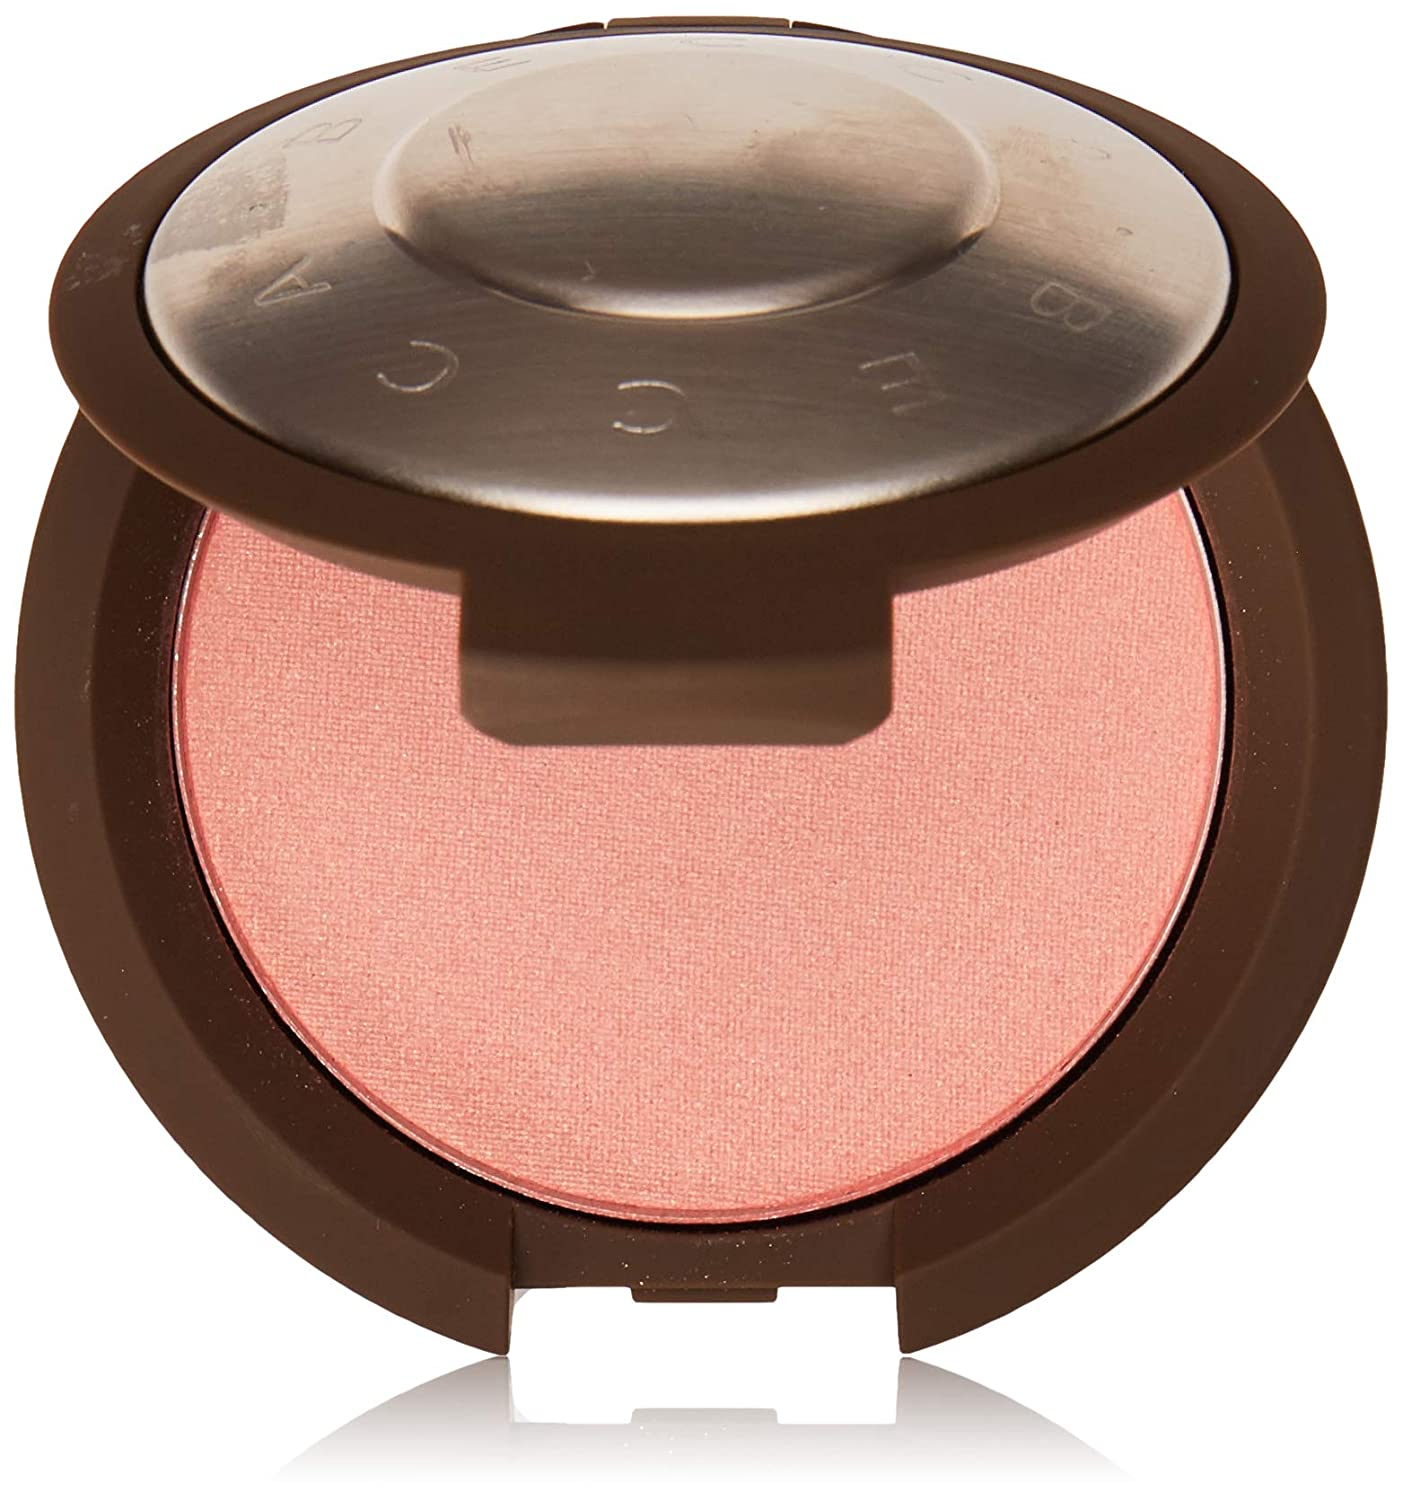 Becca Mineral Blush Ounce Recommended Flowerchild 0.20 New product type